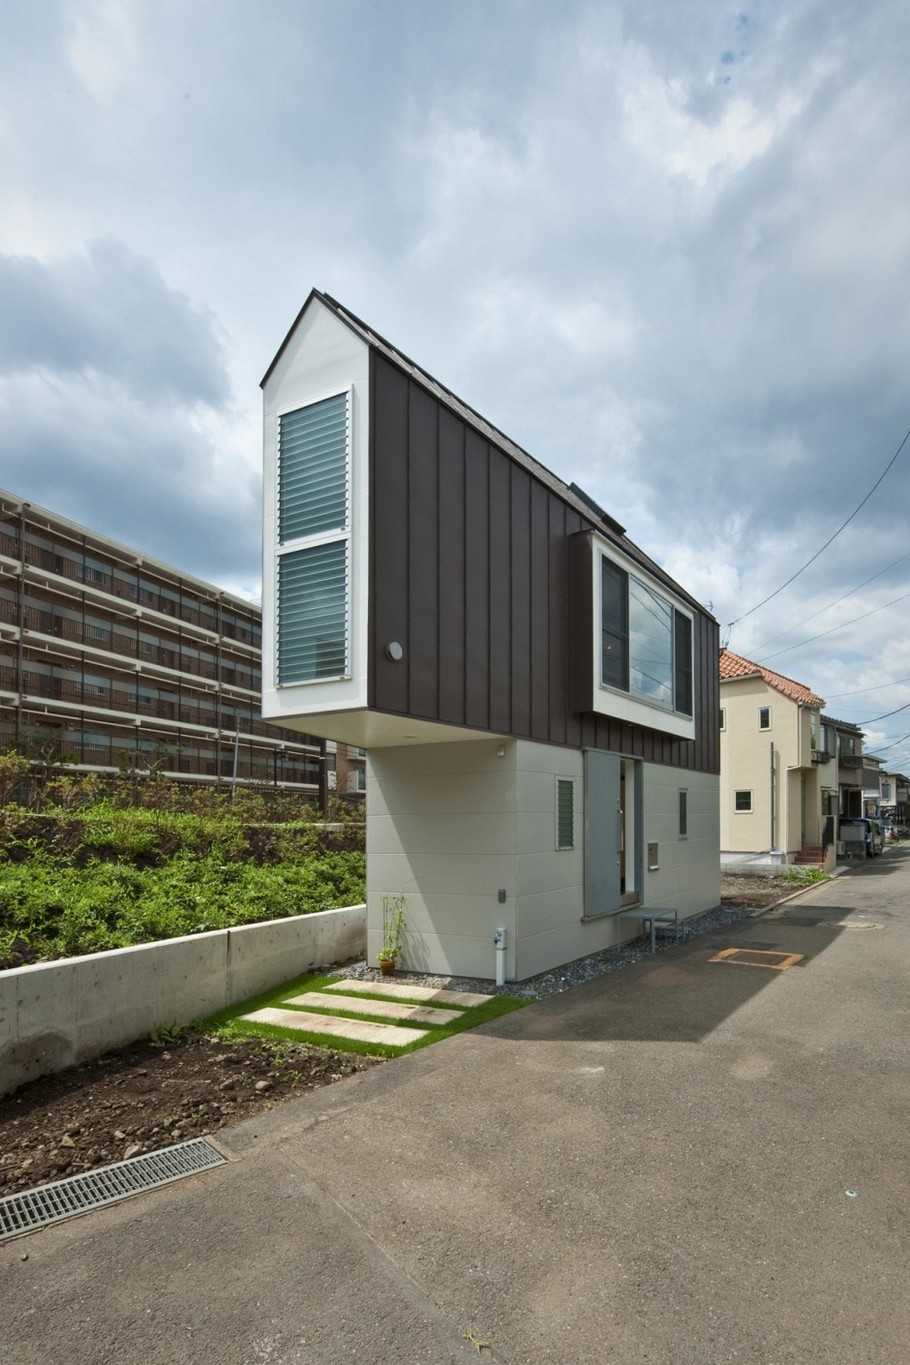 3-River-Side-House-in-Horinouchi-by-Mizuishi-Architect-Atelier